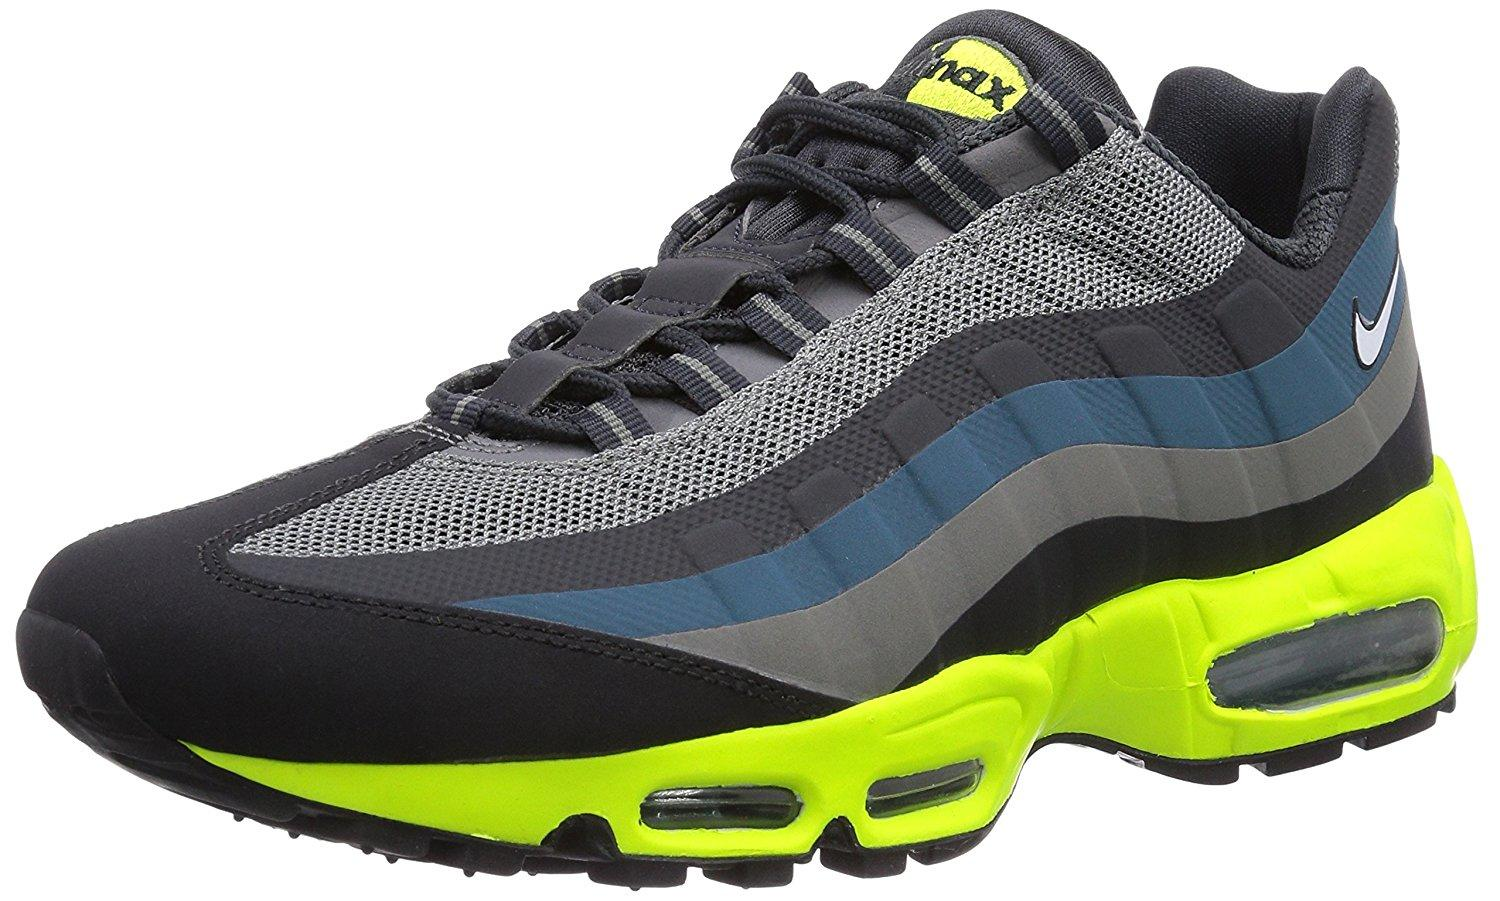 Nike Air Max 95 Reviewed - To Buy or Not in July 2017?